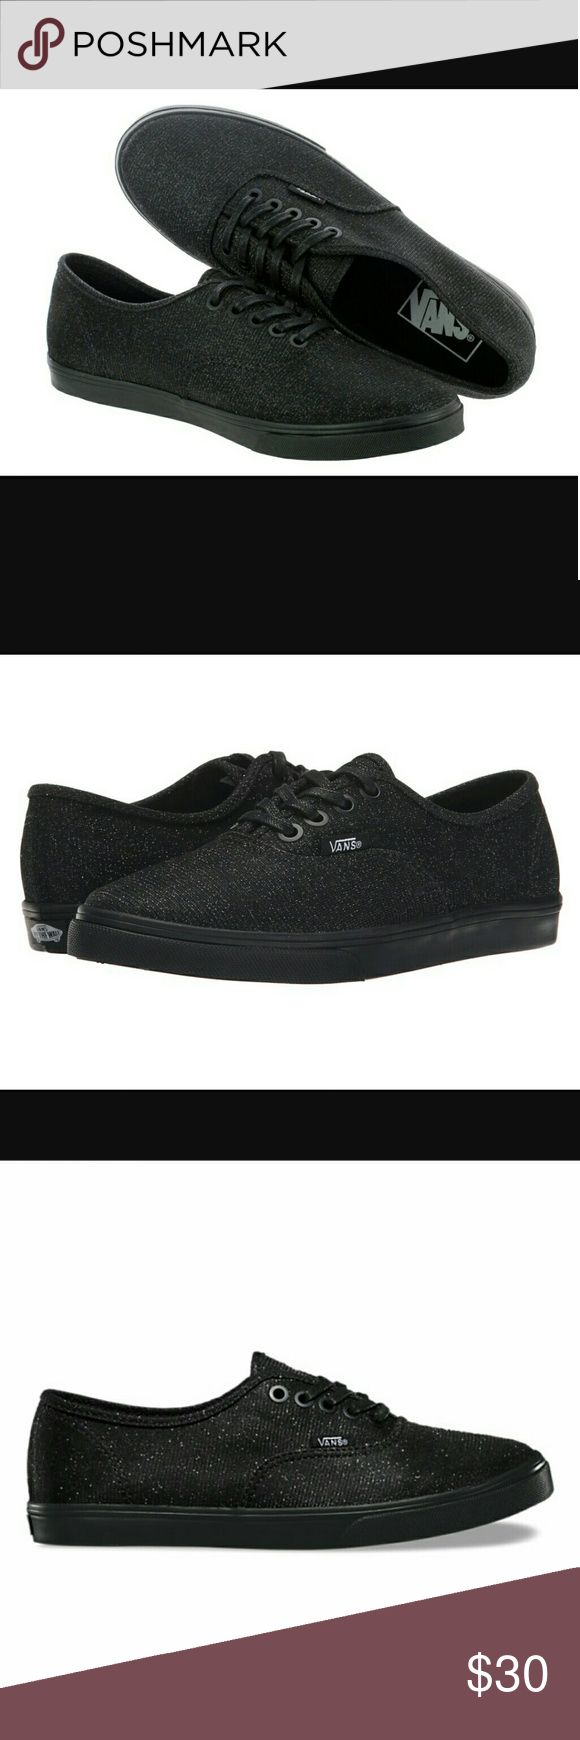 Black glitter vans They were only used once. Vans Shoes Sneakers